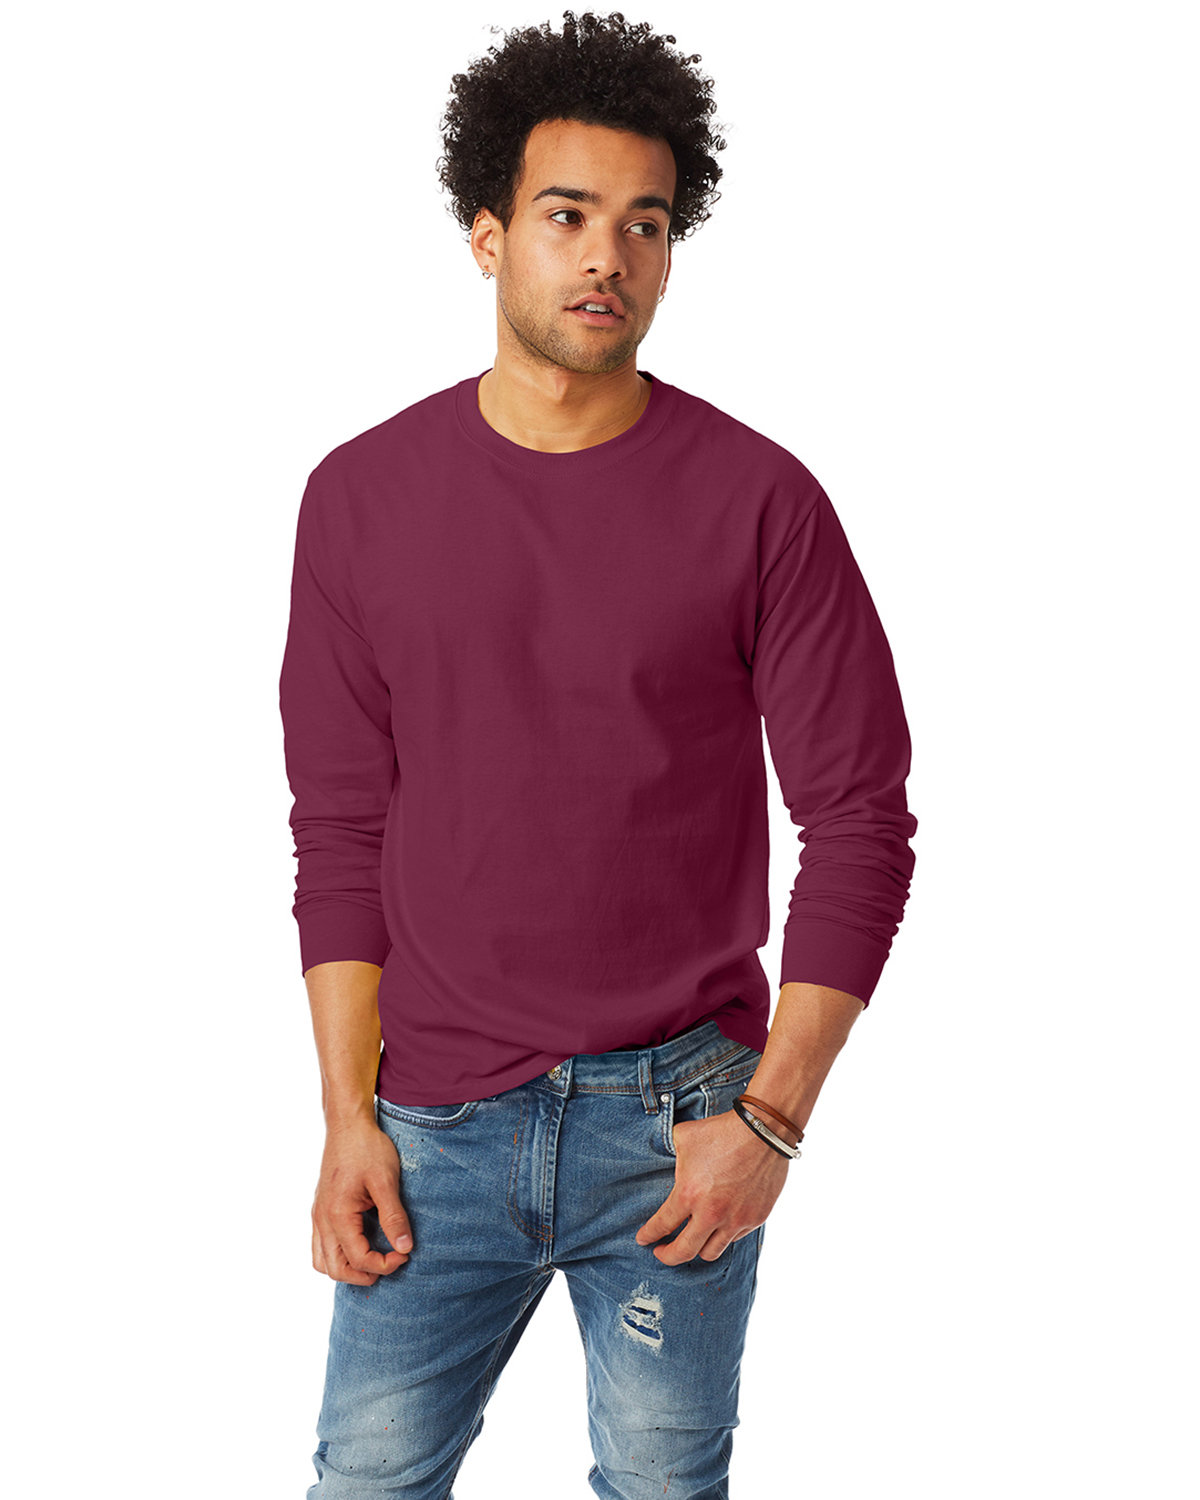 Hanes Adult Authentic-T Long-Sleeve T-Shirt MAROON